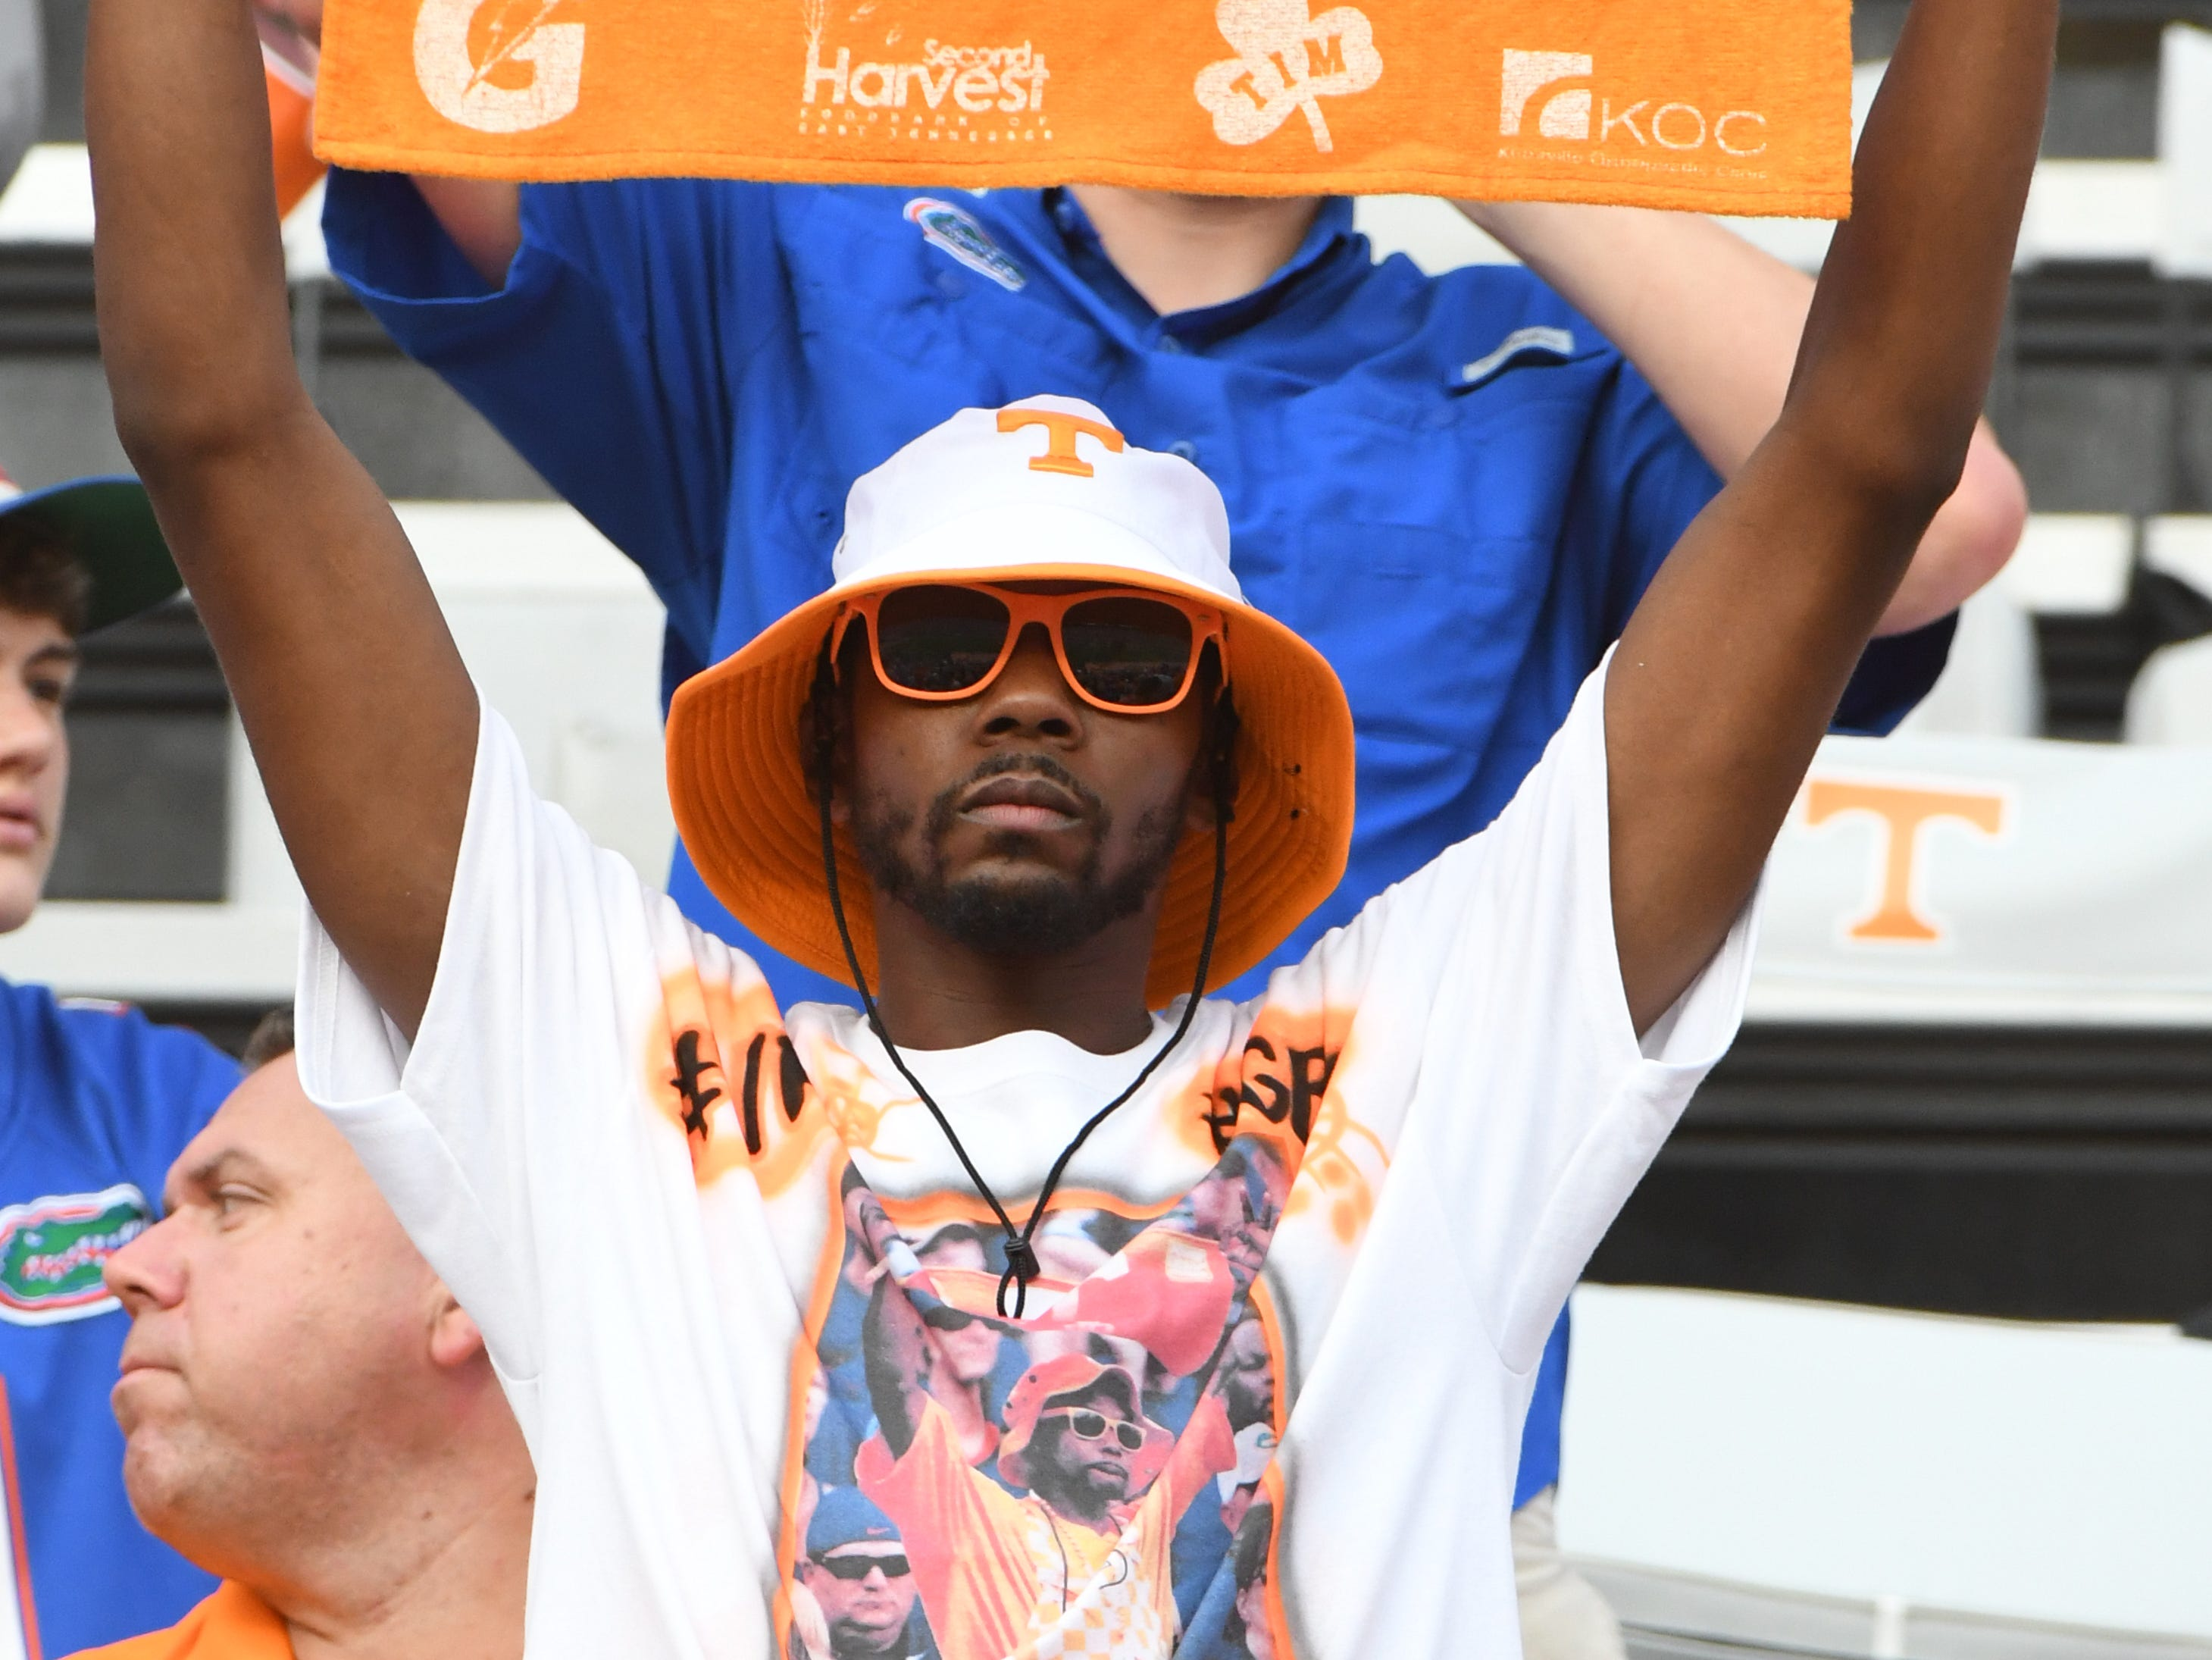 A Tennessee fan cheers from the stands during a game between Tennessee and Florida at Neyland Stadium in Knoxville, Tennessee on Saturday, September 22, 2018.